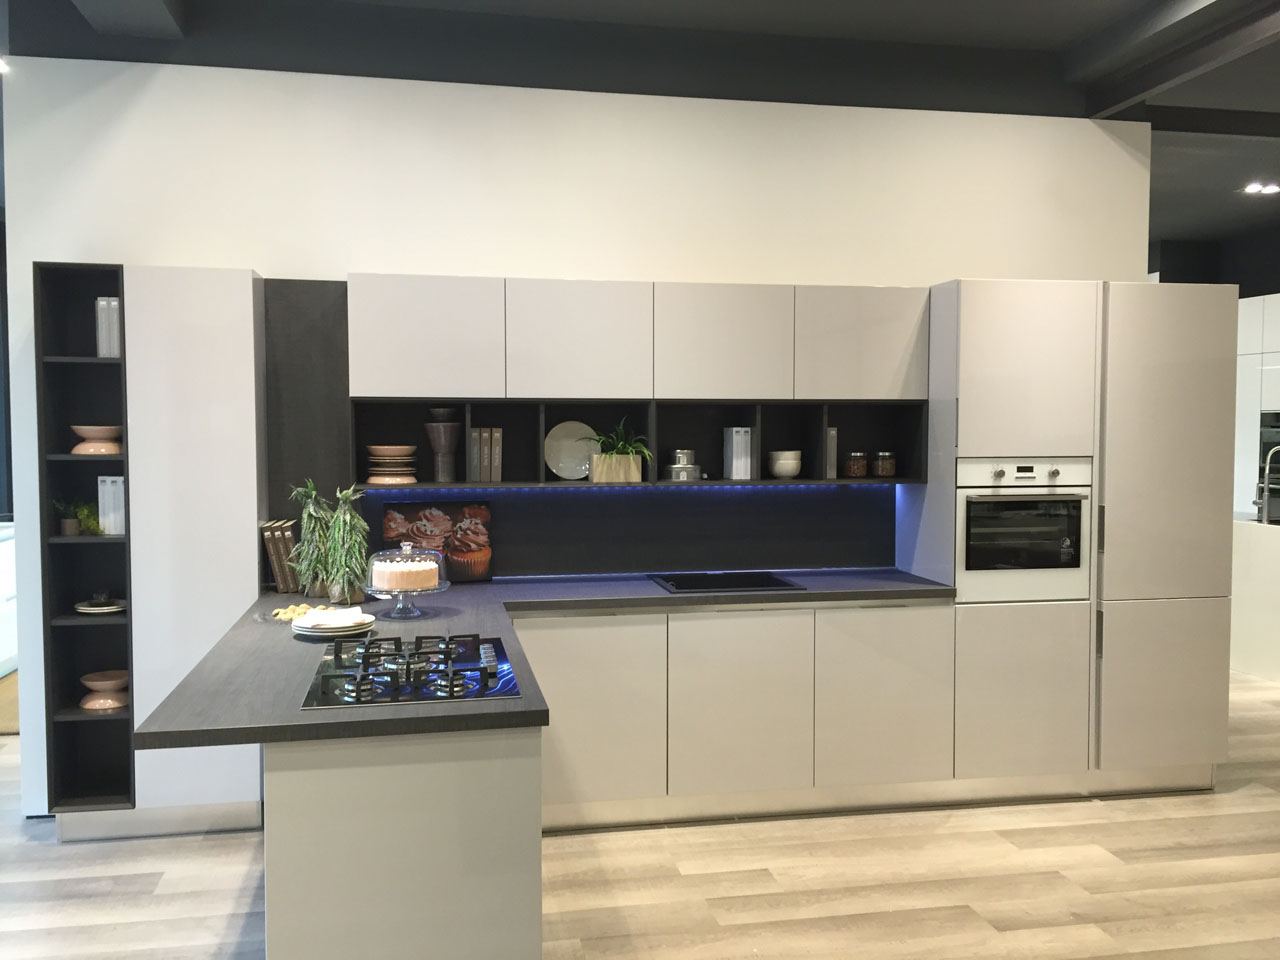 new sales outlet for the cucine lube and creo kitchens brand in ... - Lube Cucine Outlet